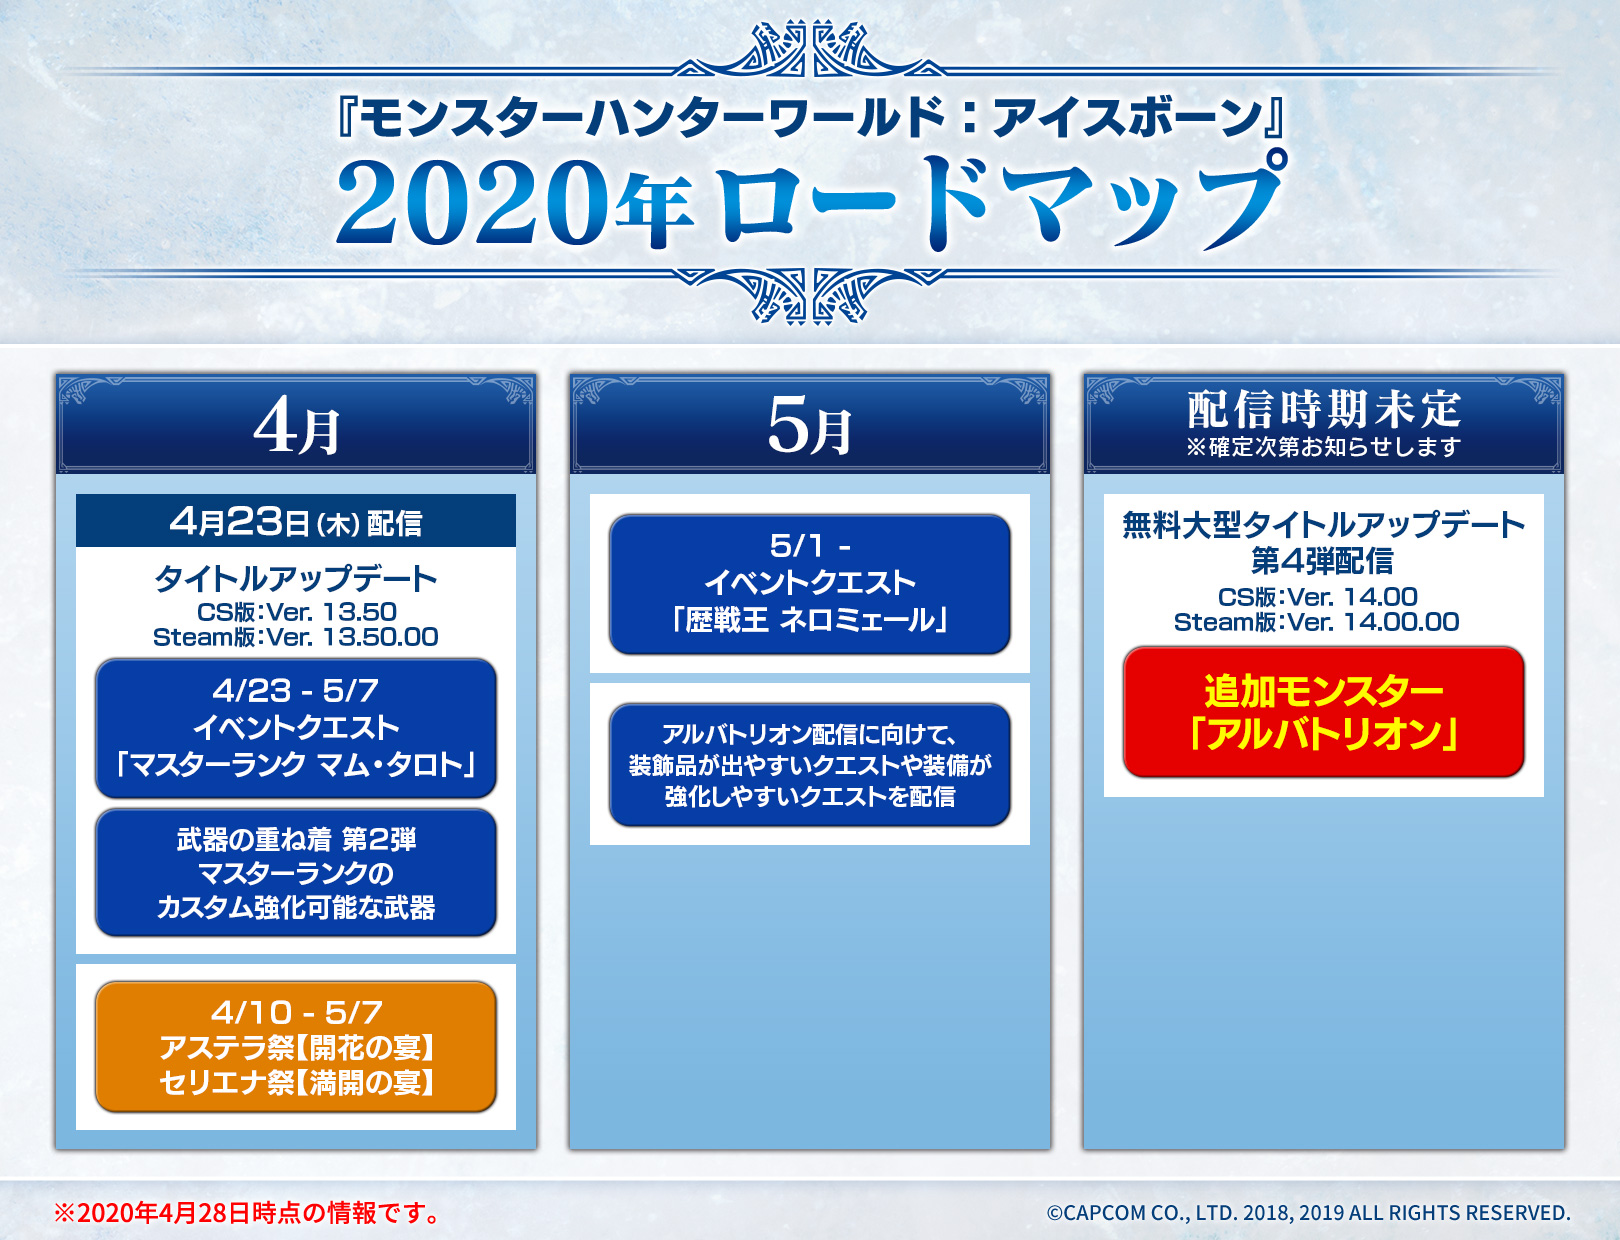 http://www.capcom.co.jp/monsterhunter/world-iceborne/pc/assets/img/ja/news/roadmap_2020.jpg